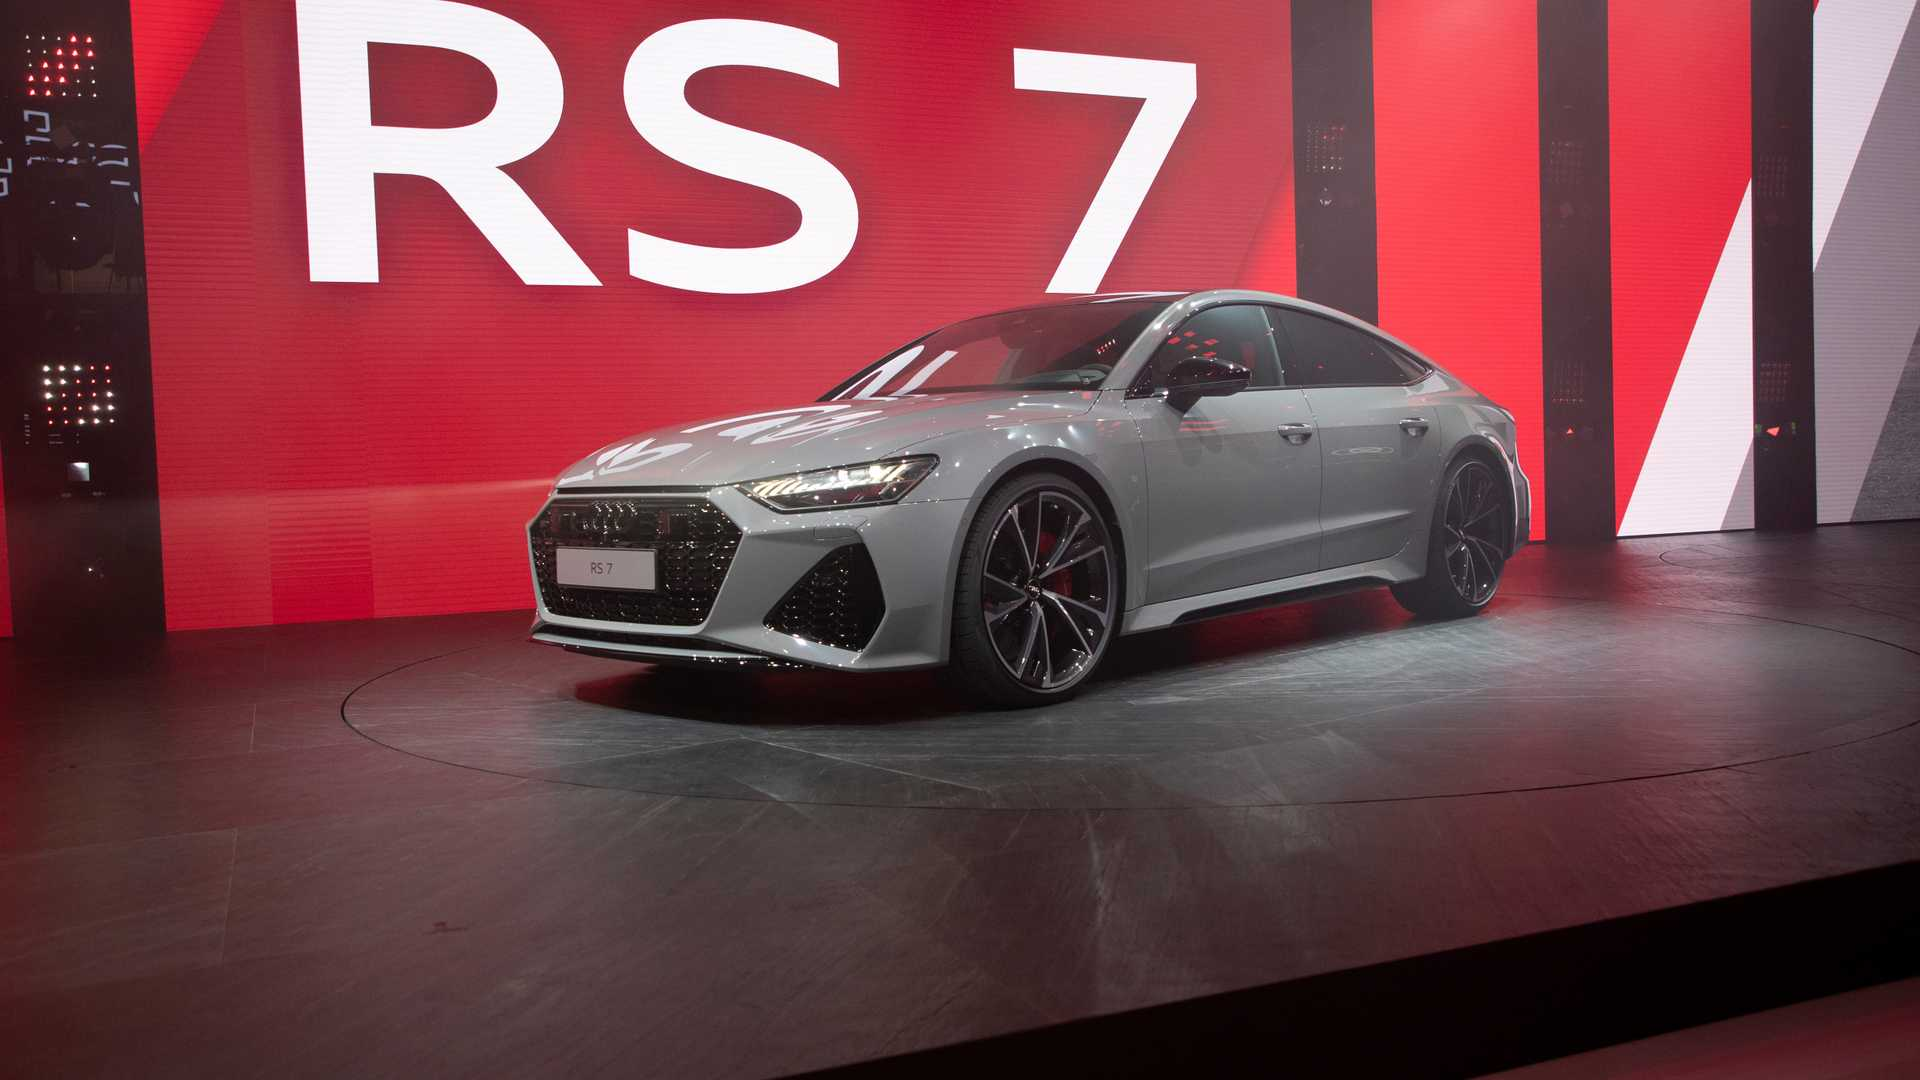 2020 Audi RS7 Sportback at the 2019 Frankfurt Motor Show